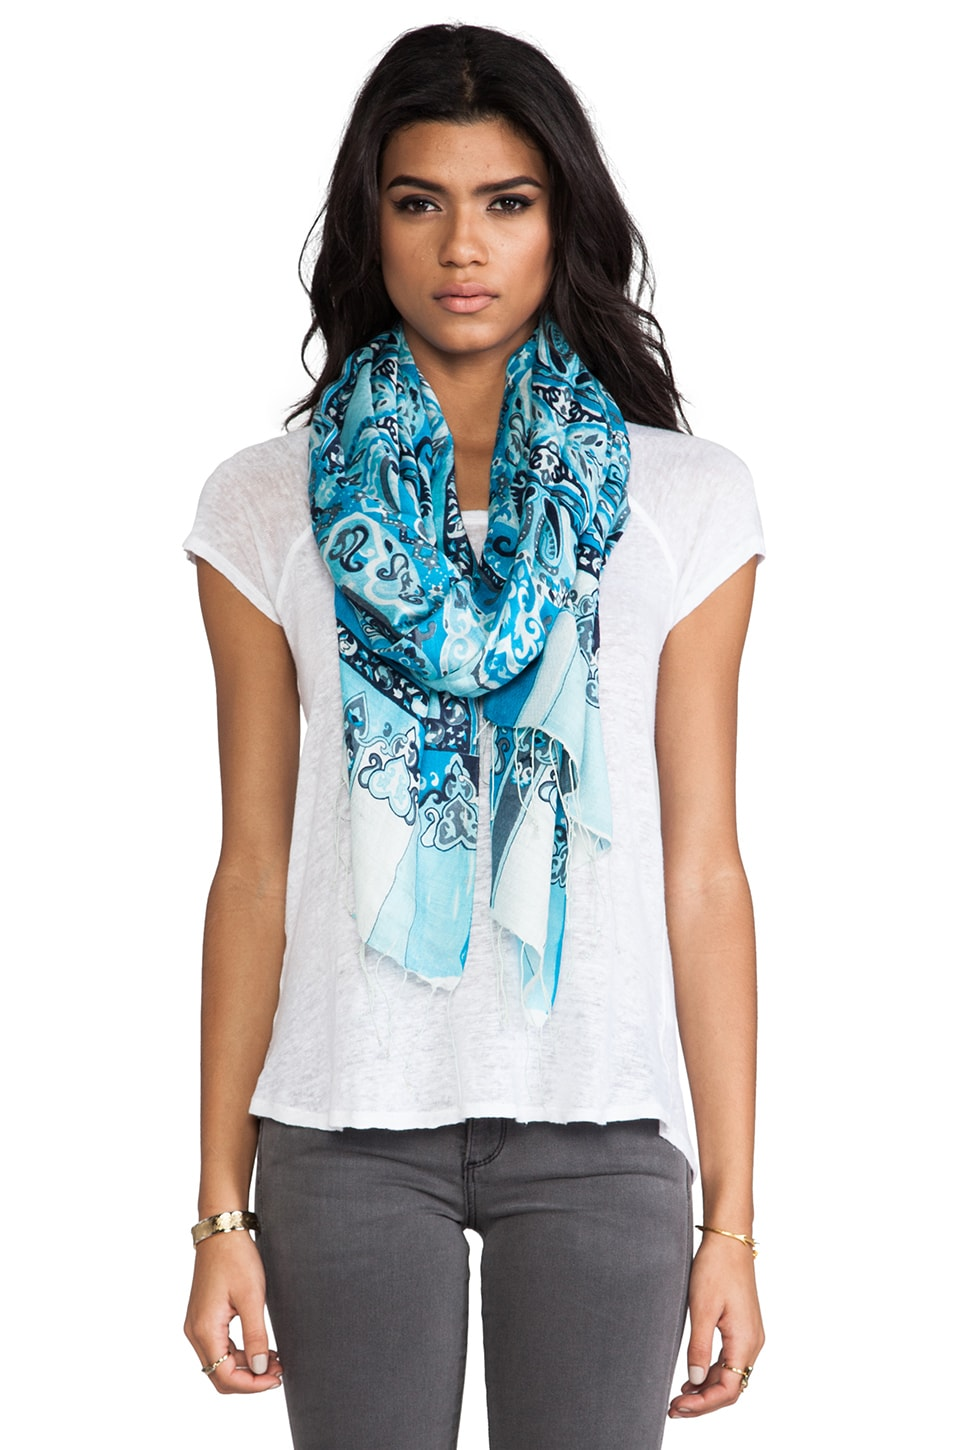 Tolani Mirage Scarf in Turquoise